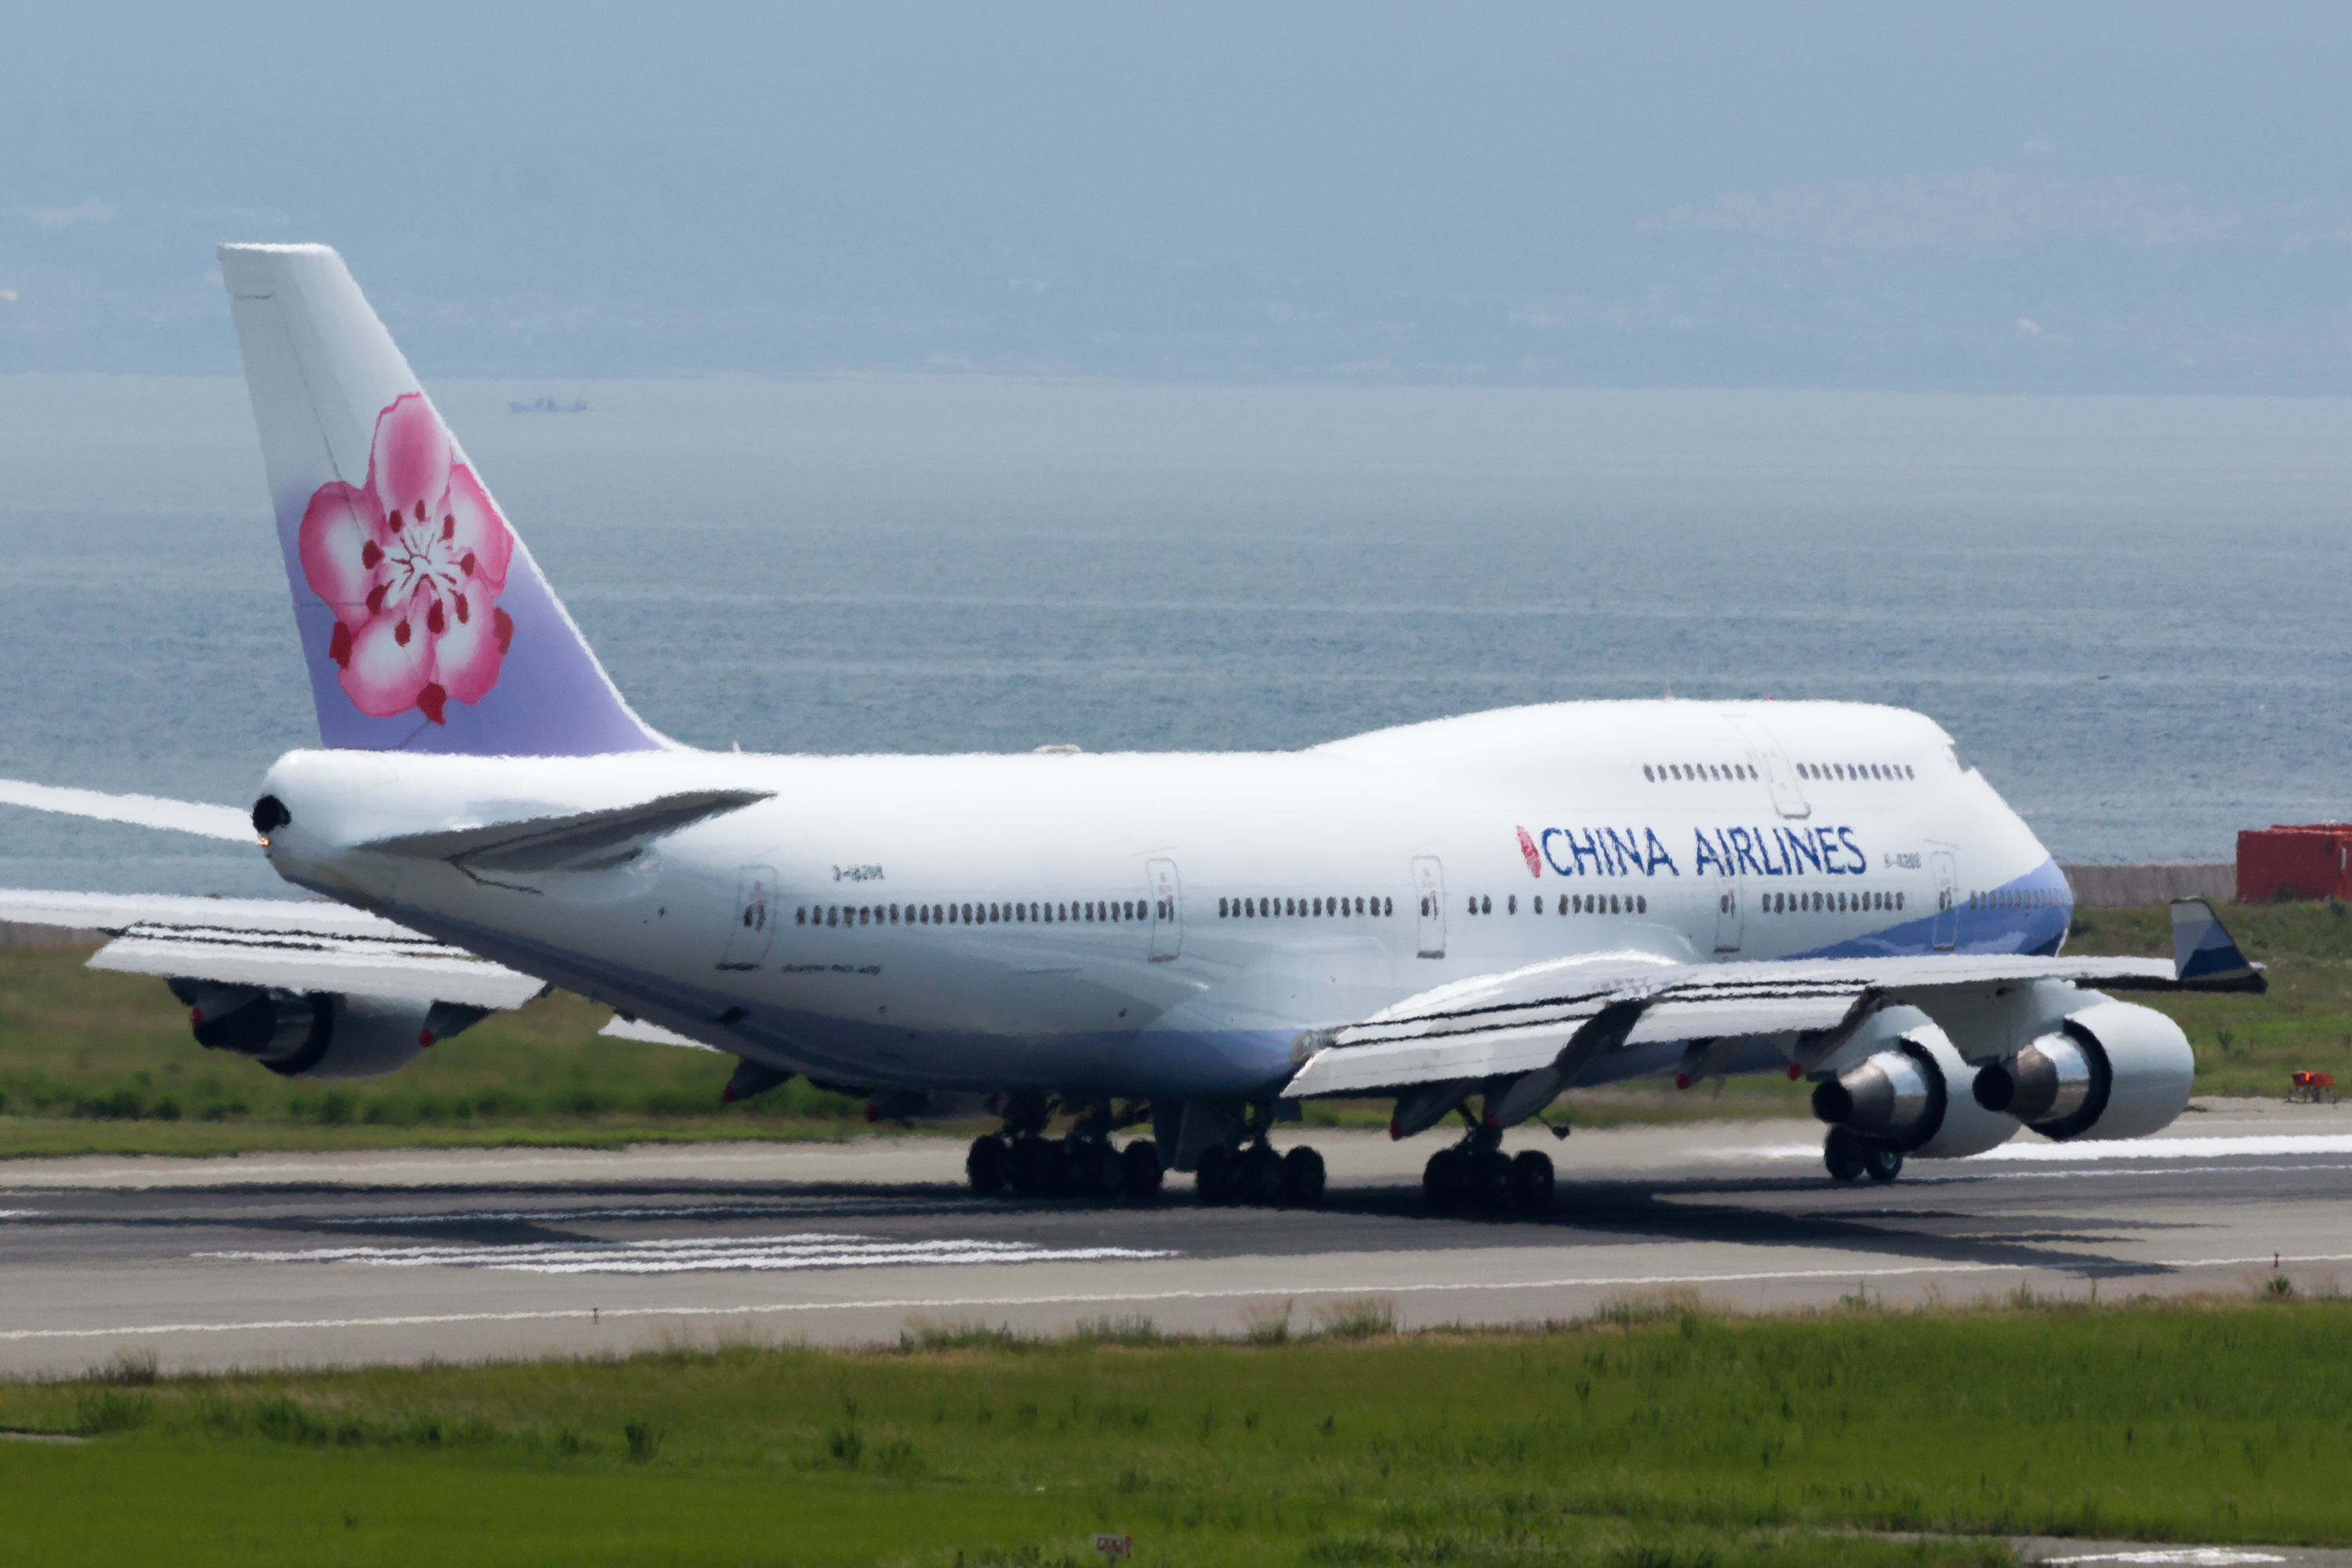 File:China Airlines, B747-400, B-18208 (19400111602).